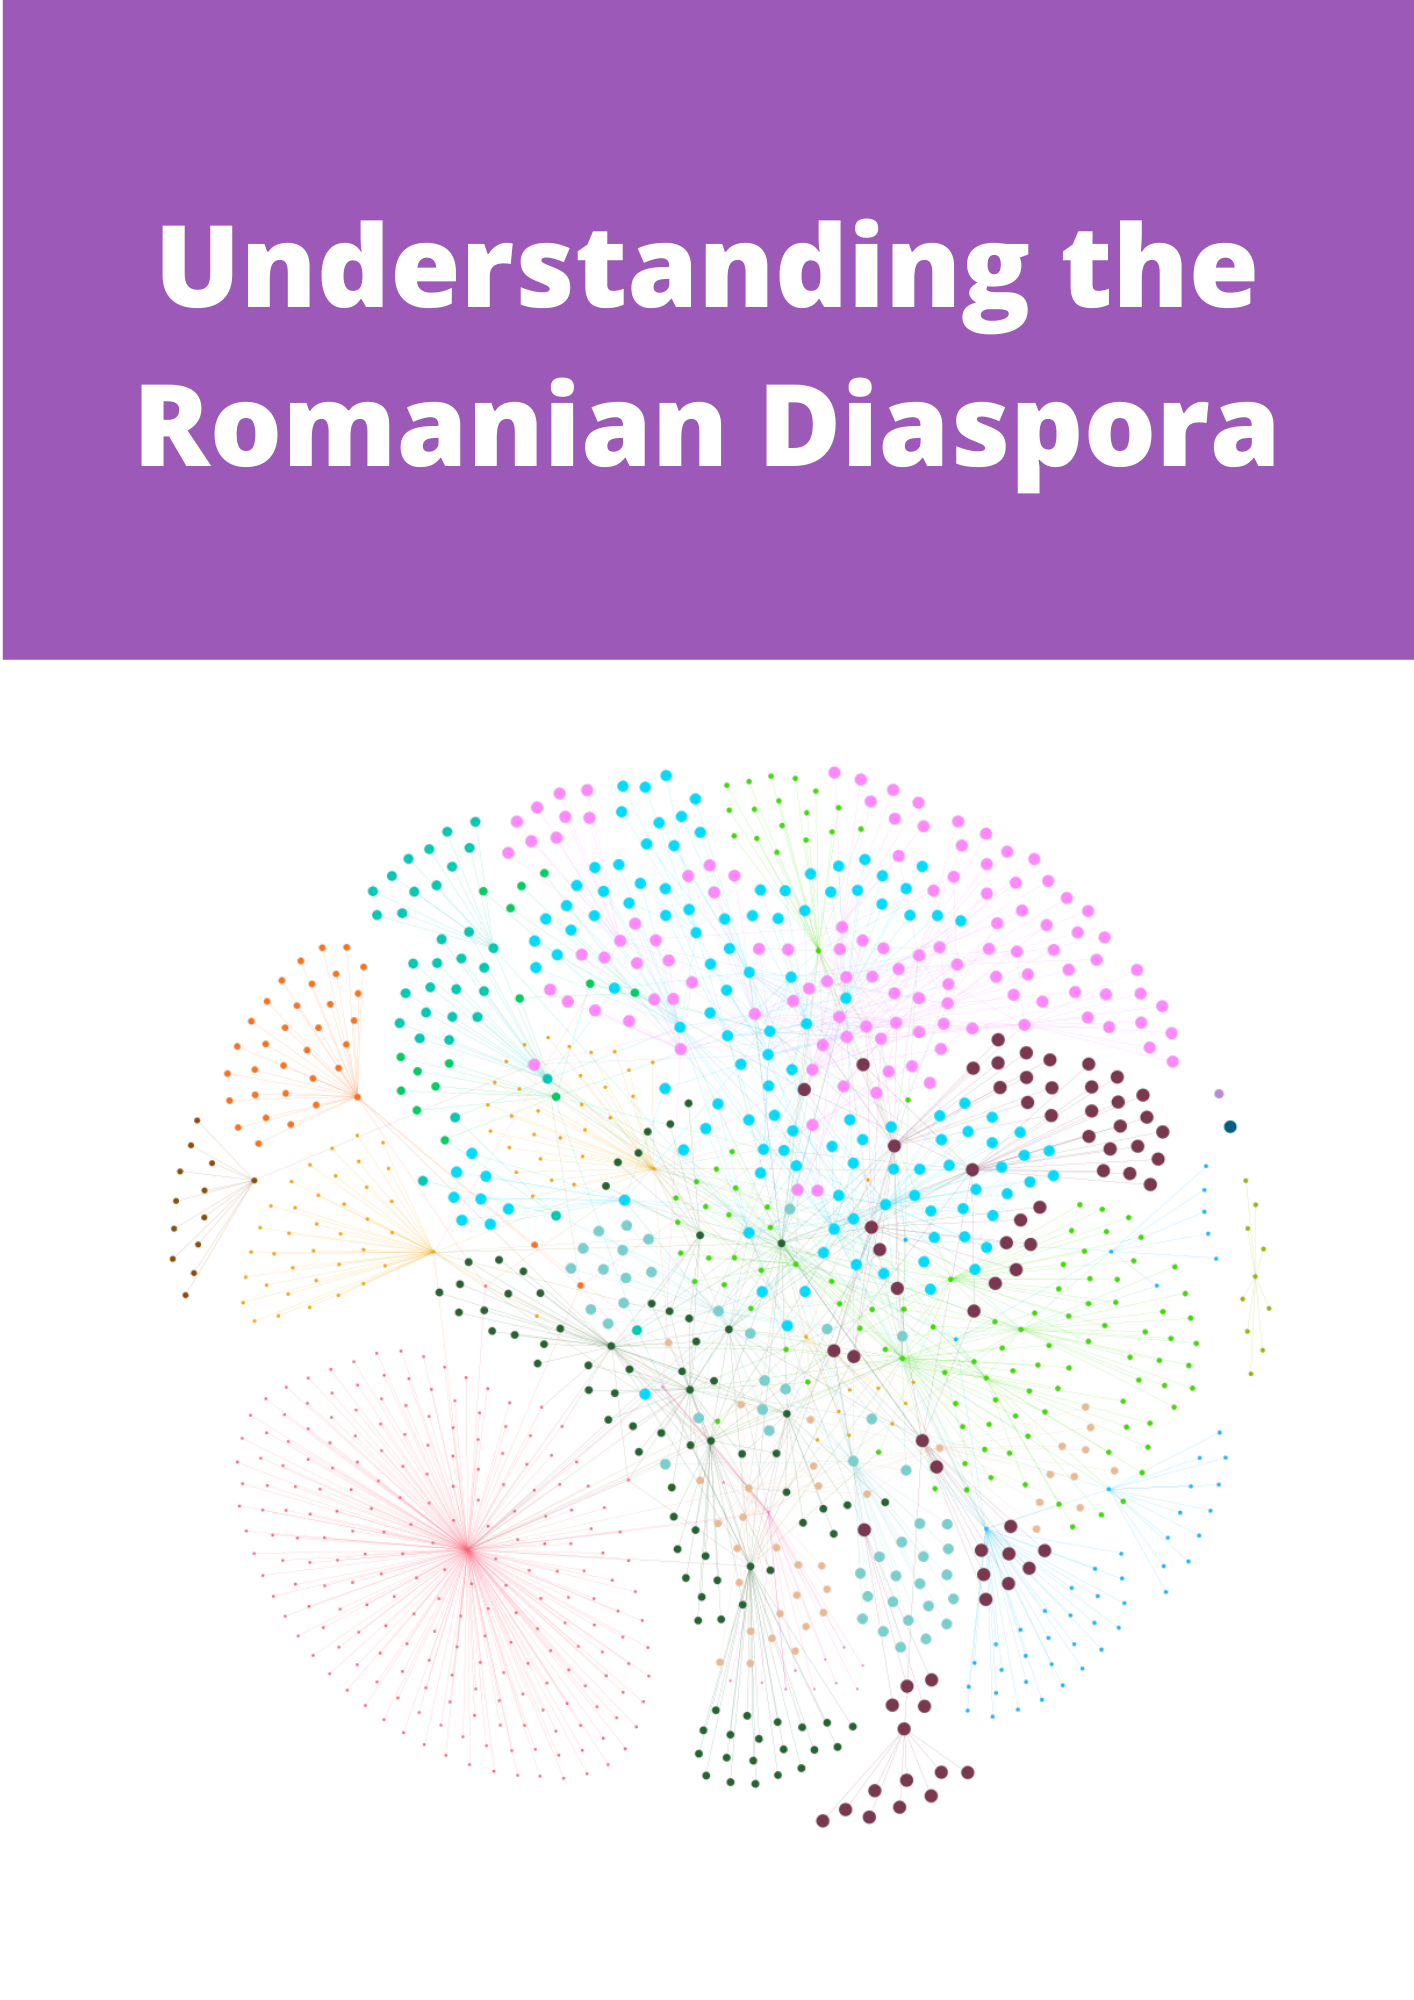 Understanding the Romanian Diaspora